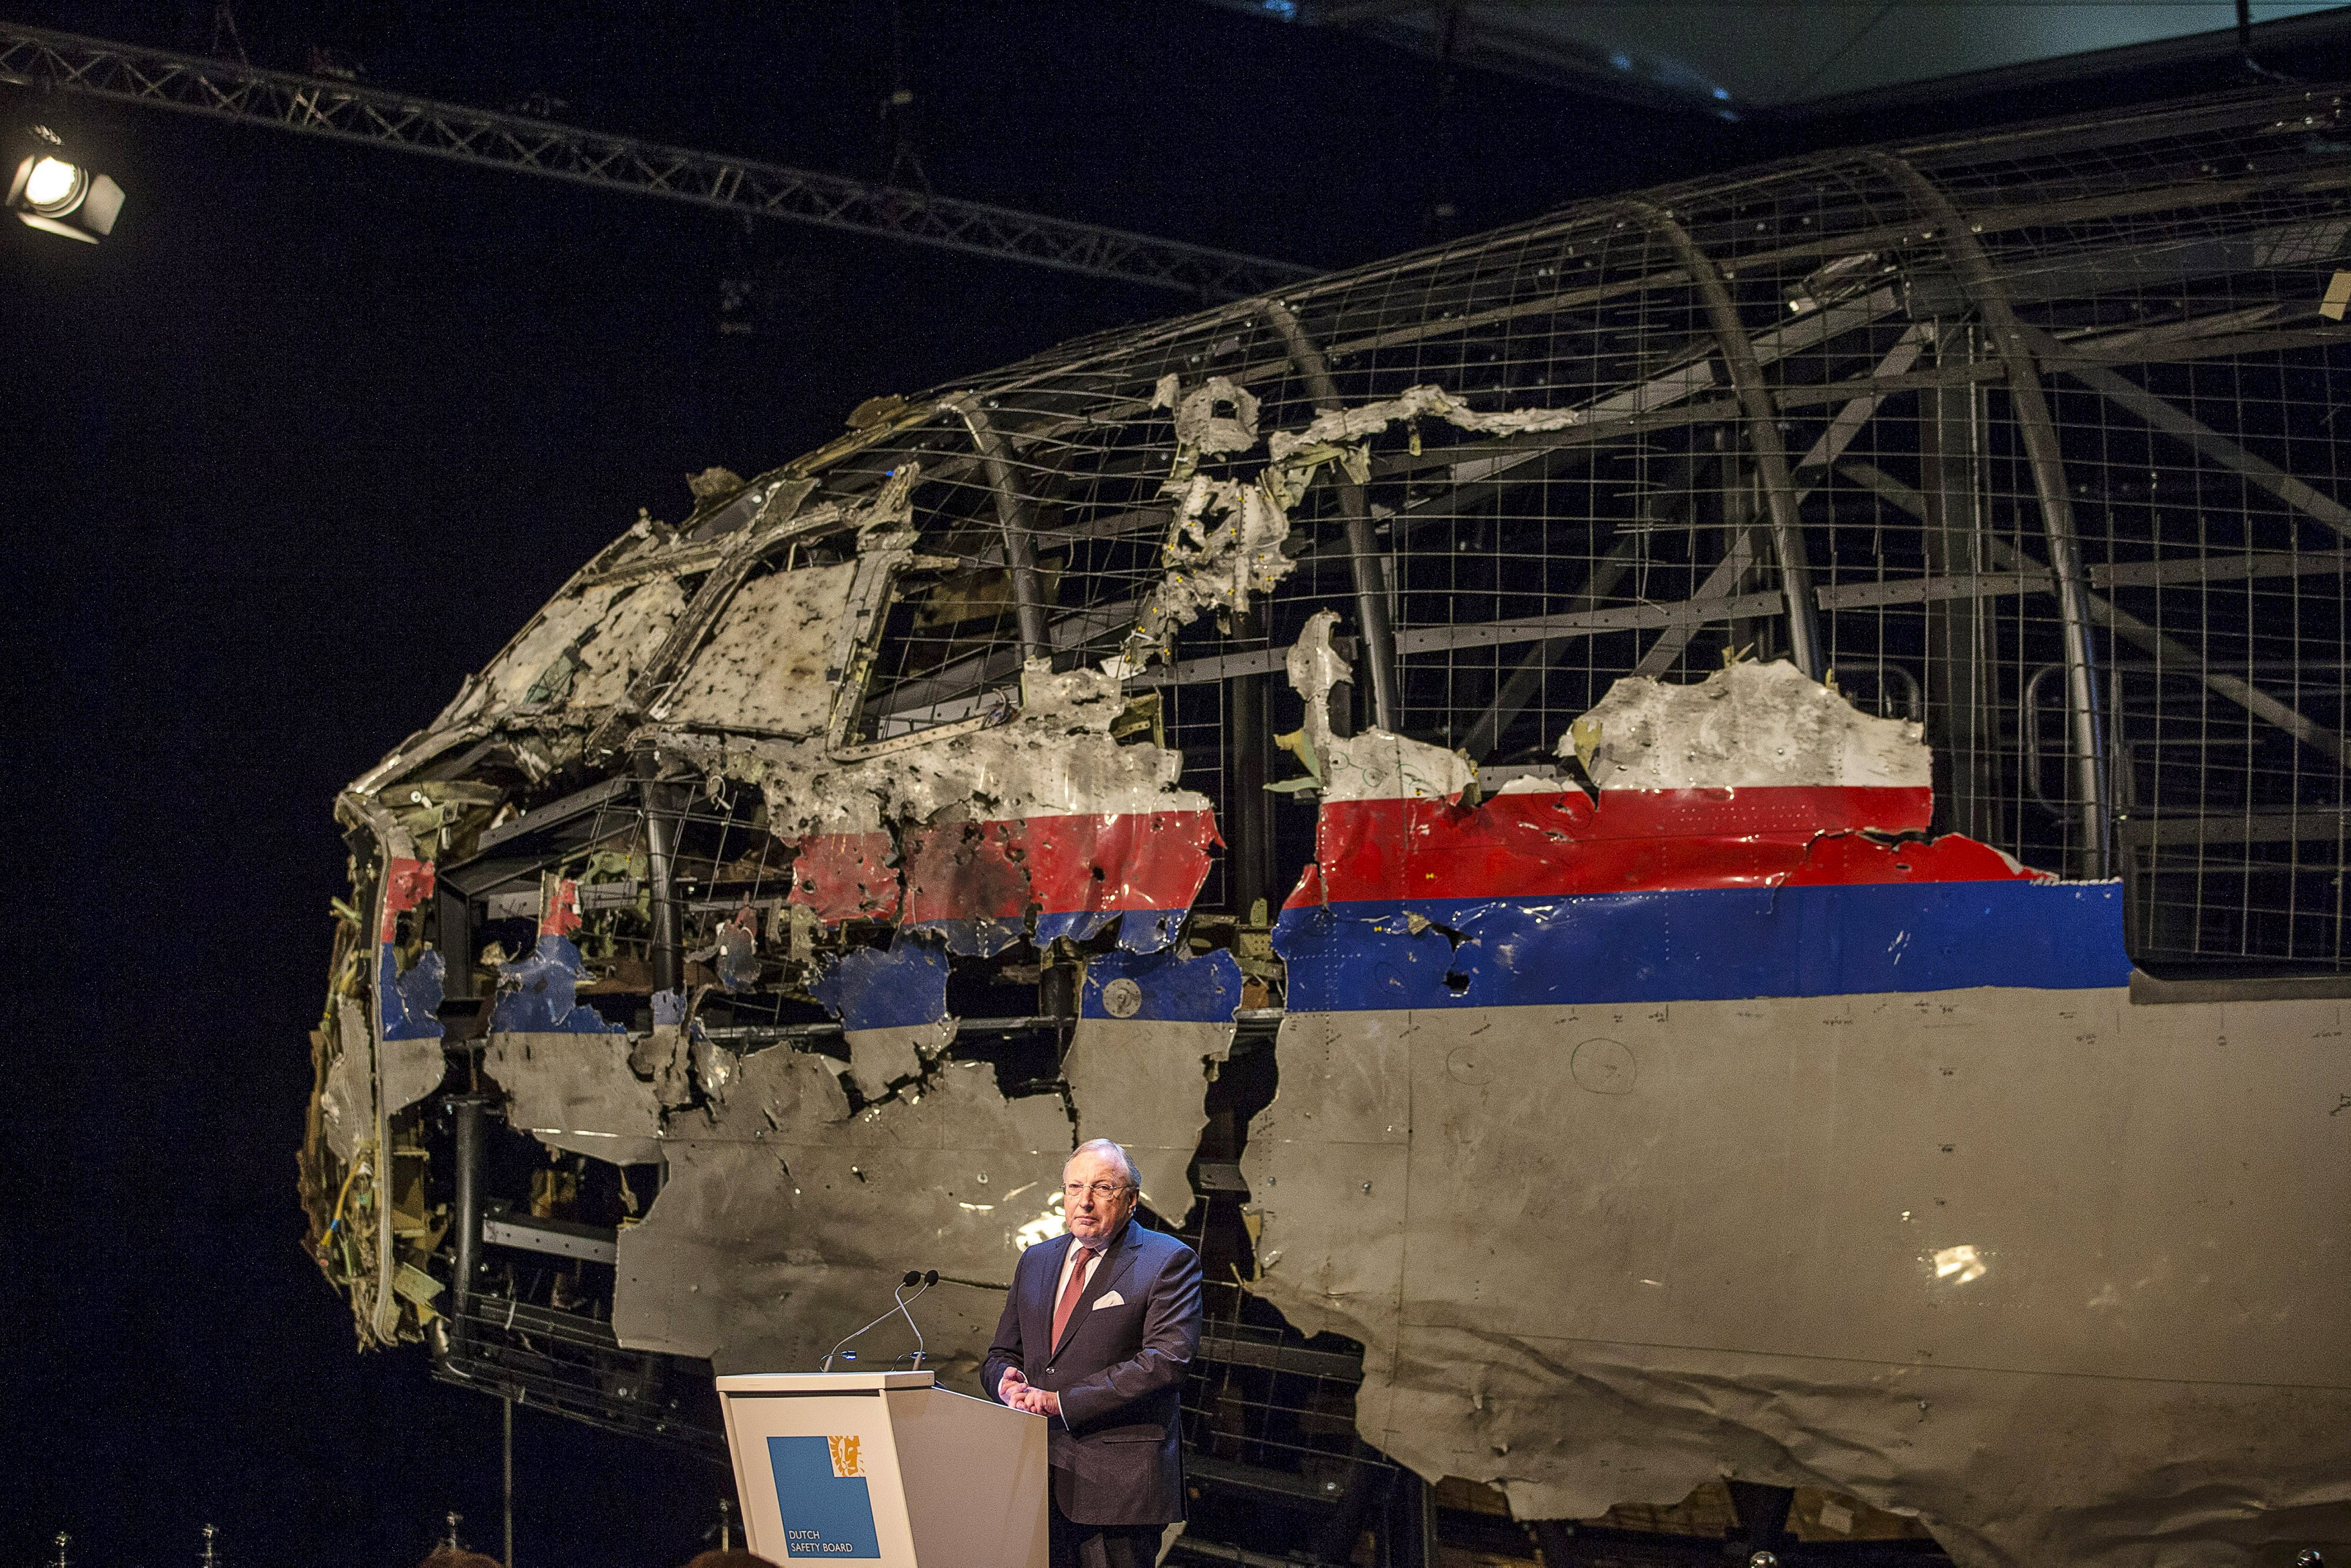 Tjibbe Joustra, chairman of the Dutch Safety Board, presents the final report into the crash of July 2014 of Malaysia Airlines flight MH17 over Ukraine in Gilze Rijen, the Netherlands, October 13, 2015. The Dutch Safety Board, issuing long-awaited findings on Tuesday of its investigation into the crash of a Malaysian passenger plane over eastern Ukraine, is expected to say it was downed by a Russian-made Buk missile but not say who was responsible for firing it. Buk manufacturer Almaz-Antey scheduled a separate press conference on Tuesday at which it may attempt to discredit the Safety Board findings. REUTERS/Michael Kooren      TPX IMAGES OF THE DAY